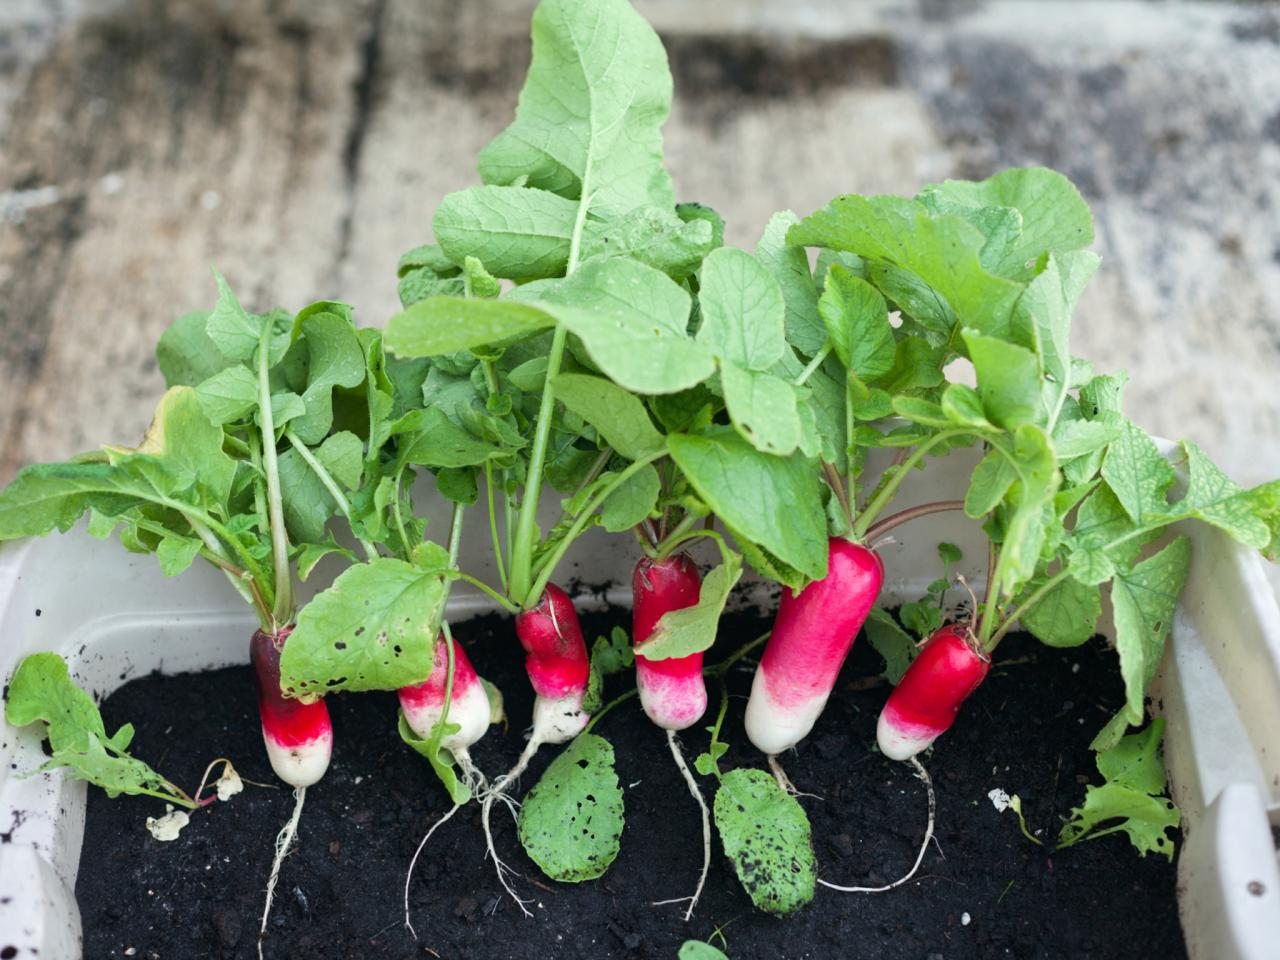 Growing radishes indoors diy Weird plants to grow indoors